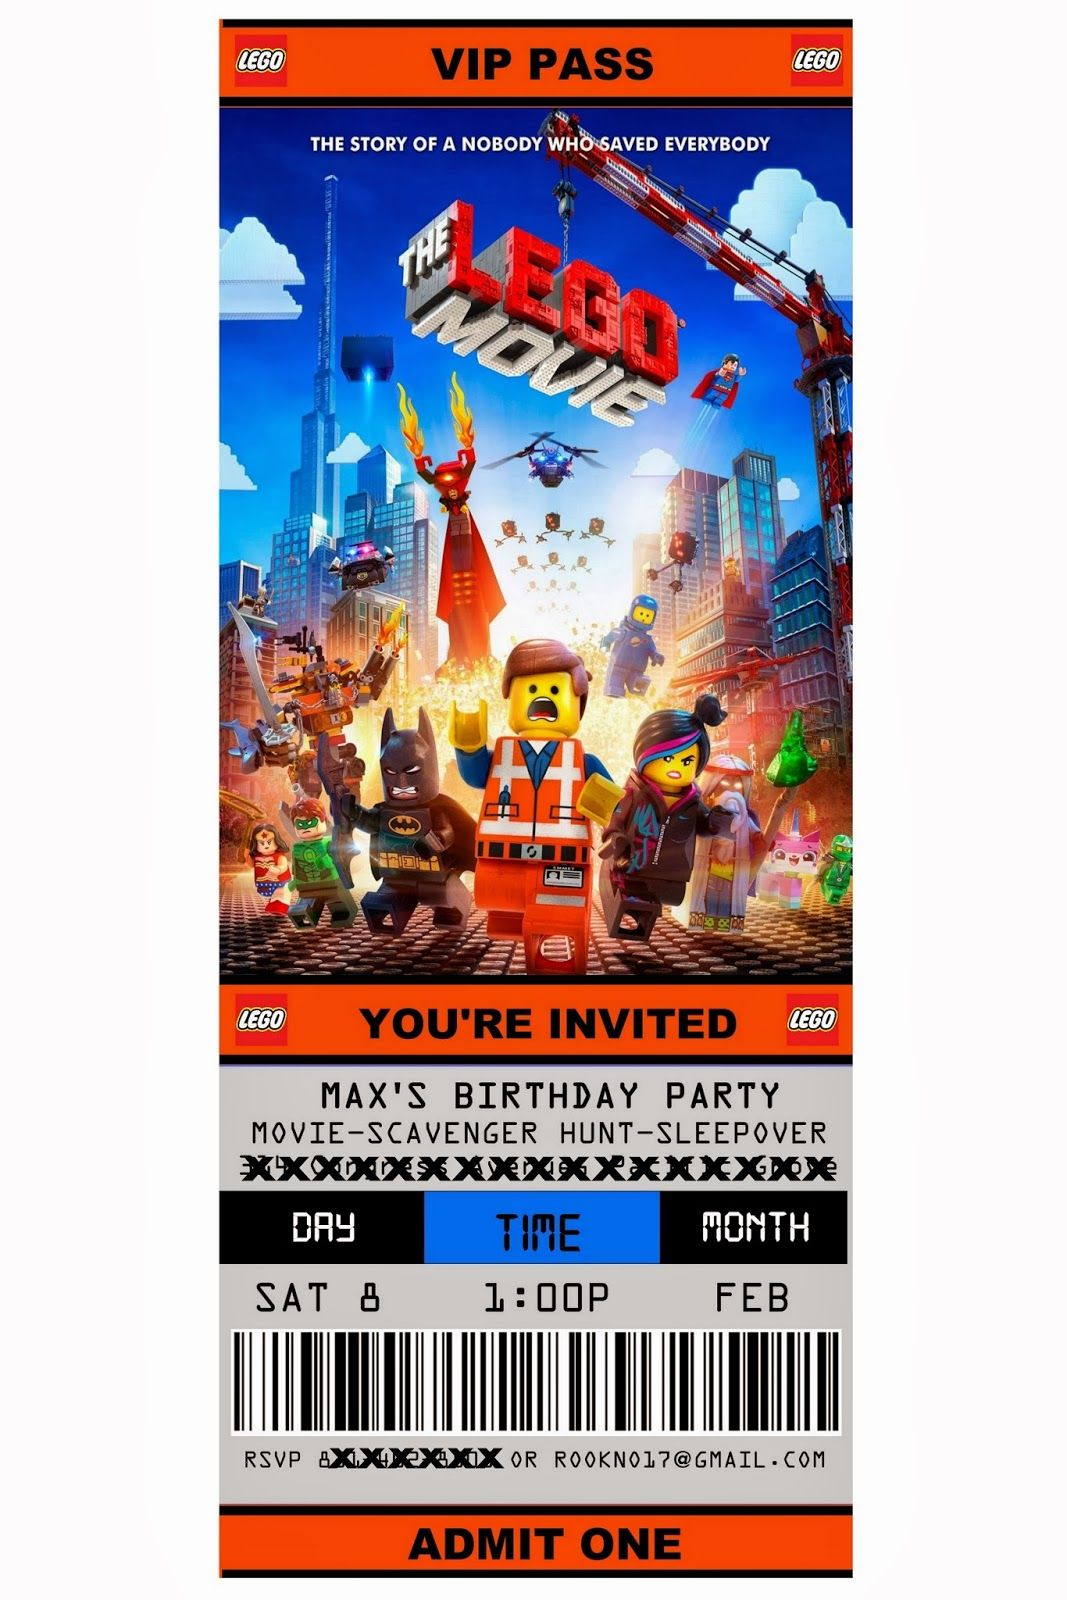 Free Printable Ticket Style Party Invitations The Lego Movie Movie Themed Party Lego Party Invitations Movie Invitation